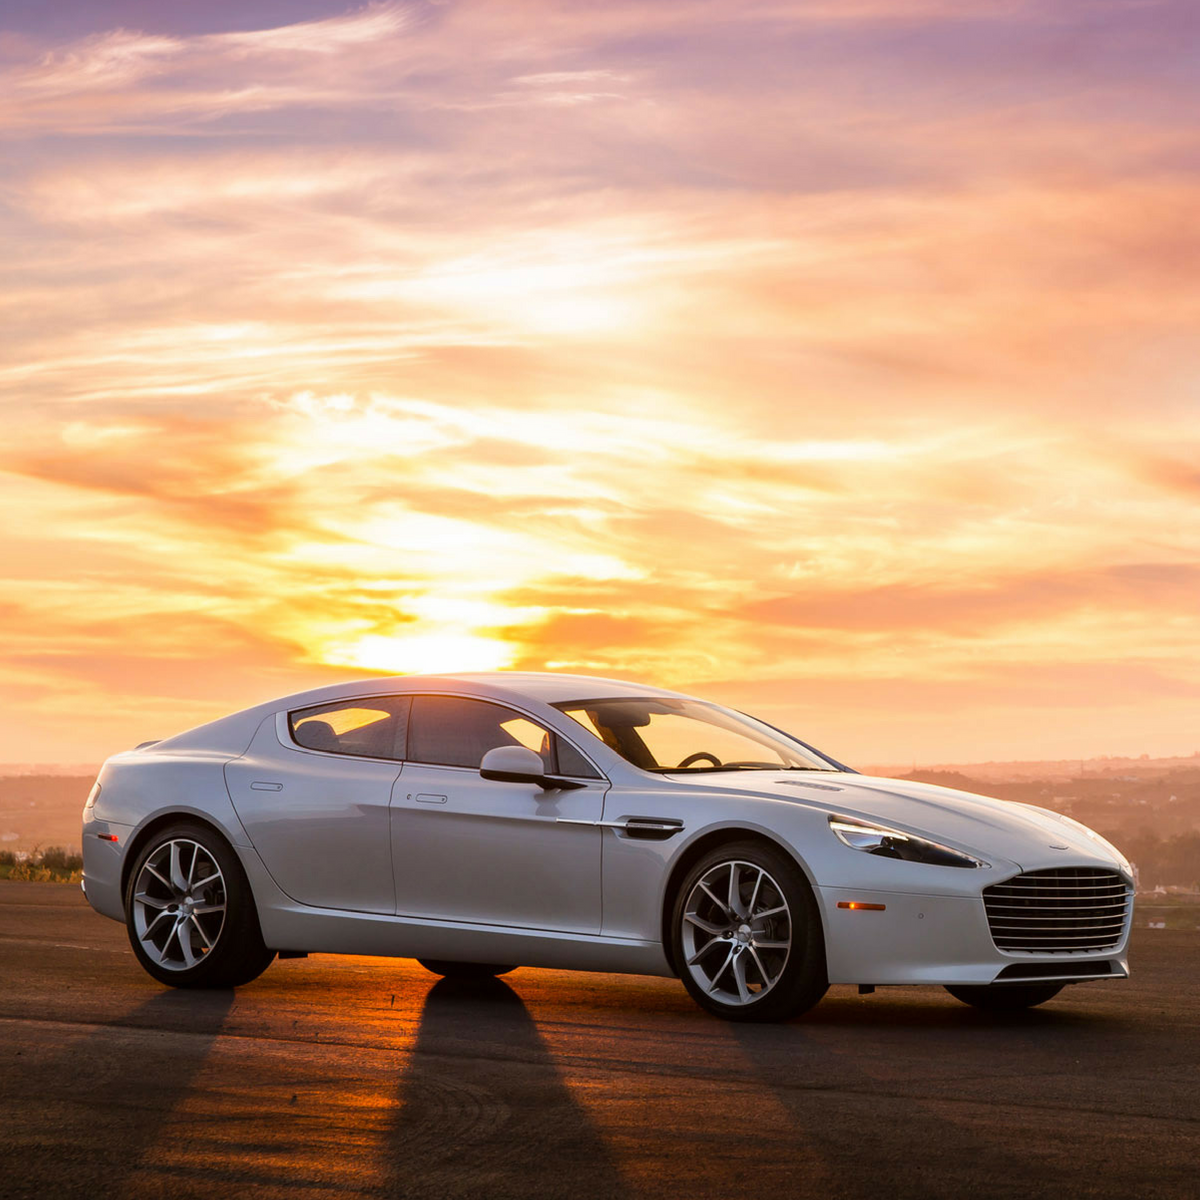 Rapide Model: Power, Mileage, Safety, Colors